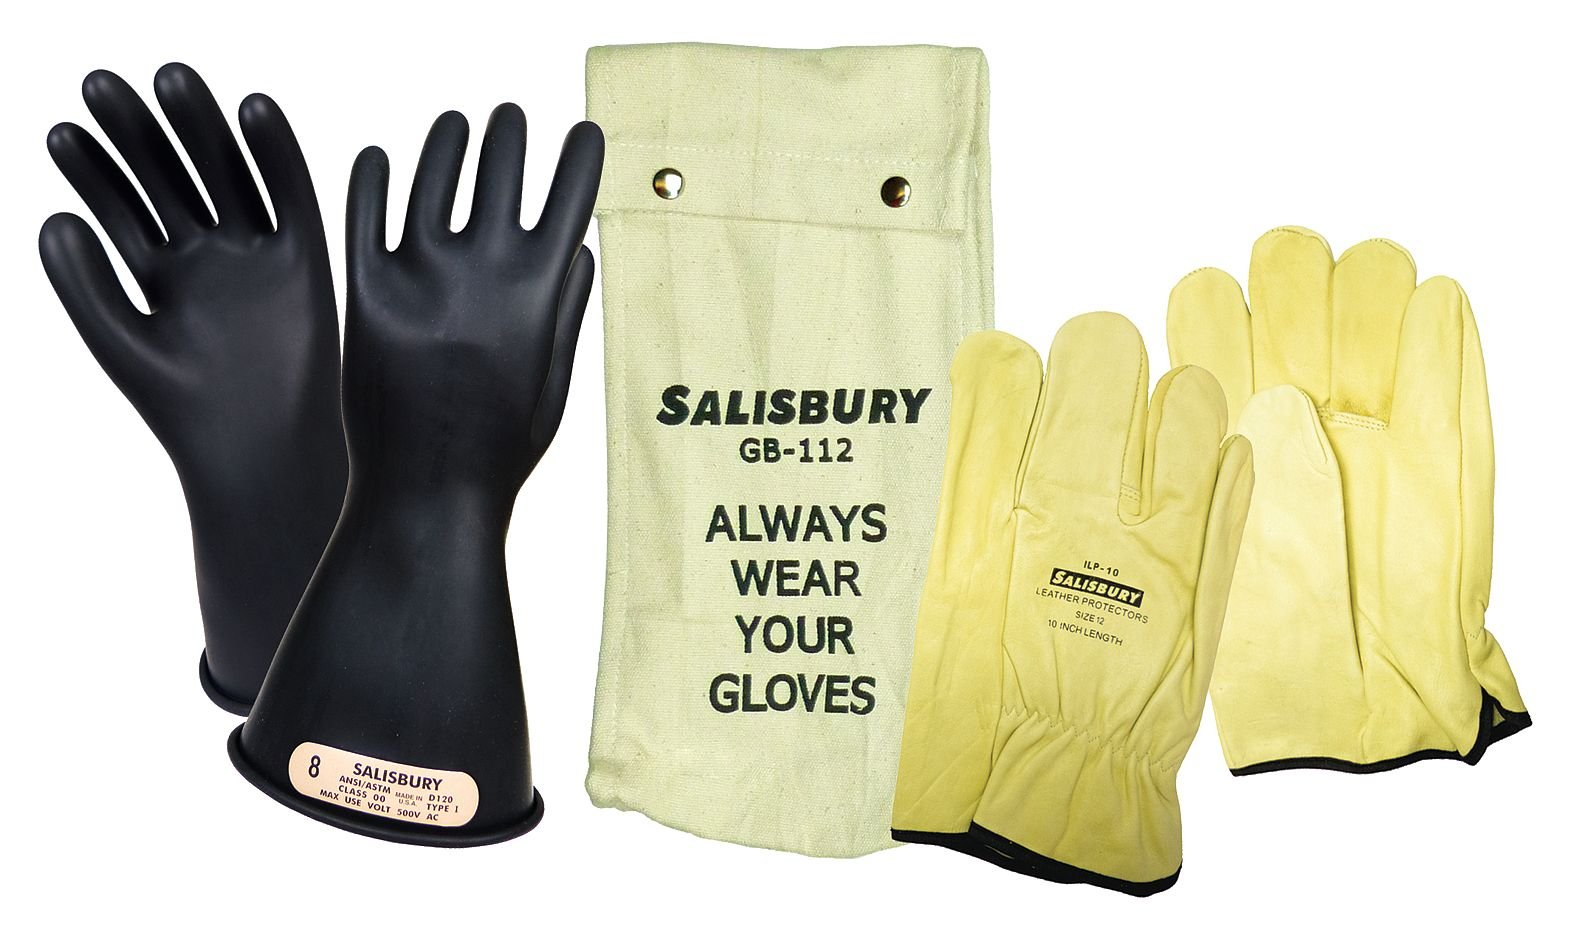 Salisbury Black Electrical Glove Kit, Natural Rubber, 00 Class, Size 10 10 Natural Rubber GK0011B/10 - 1 Each